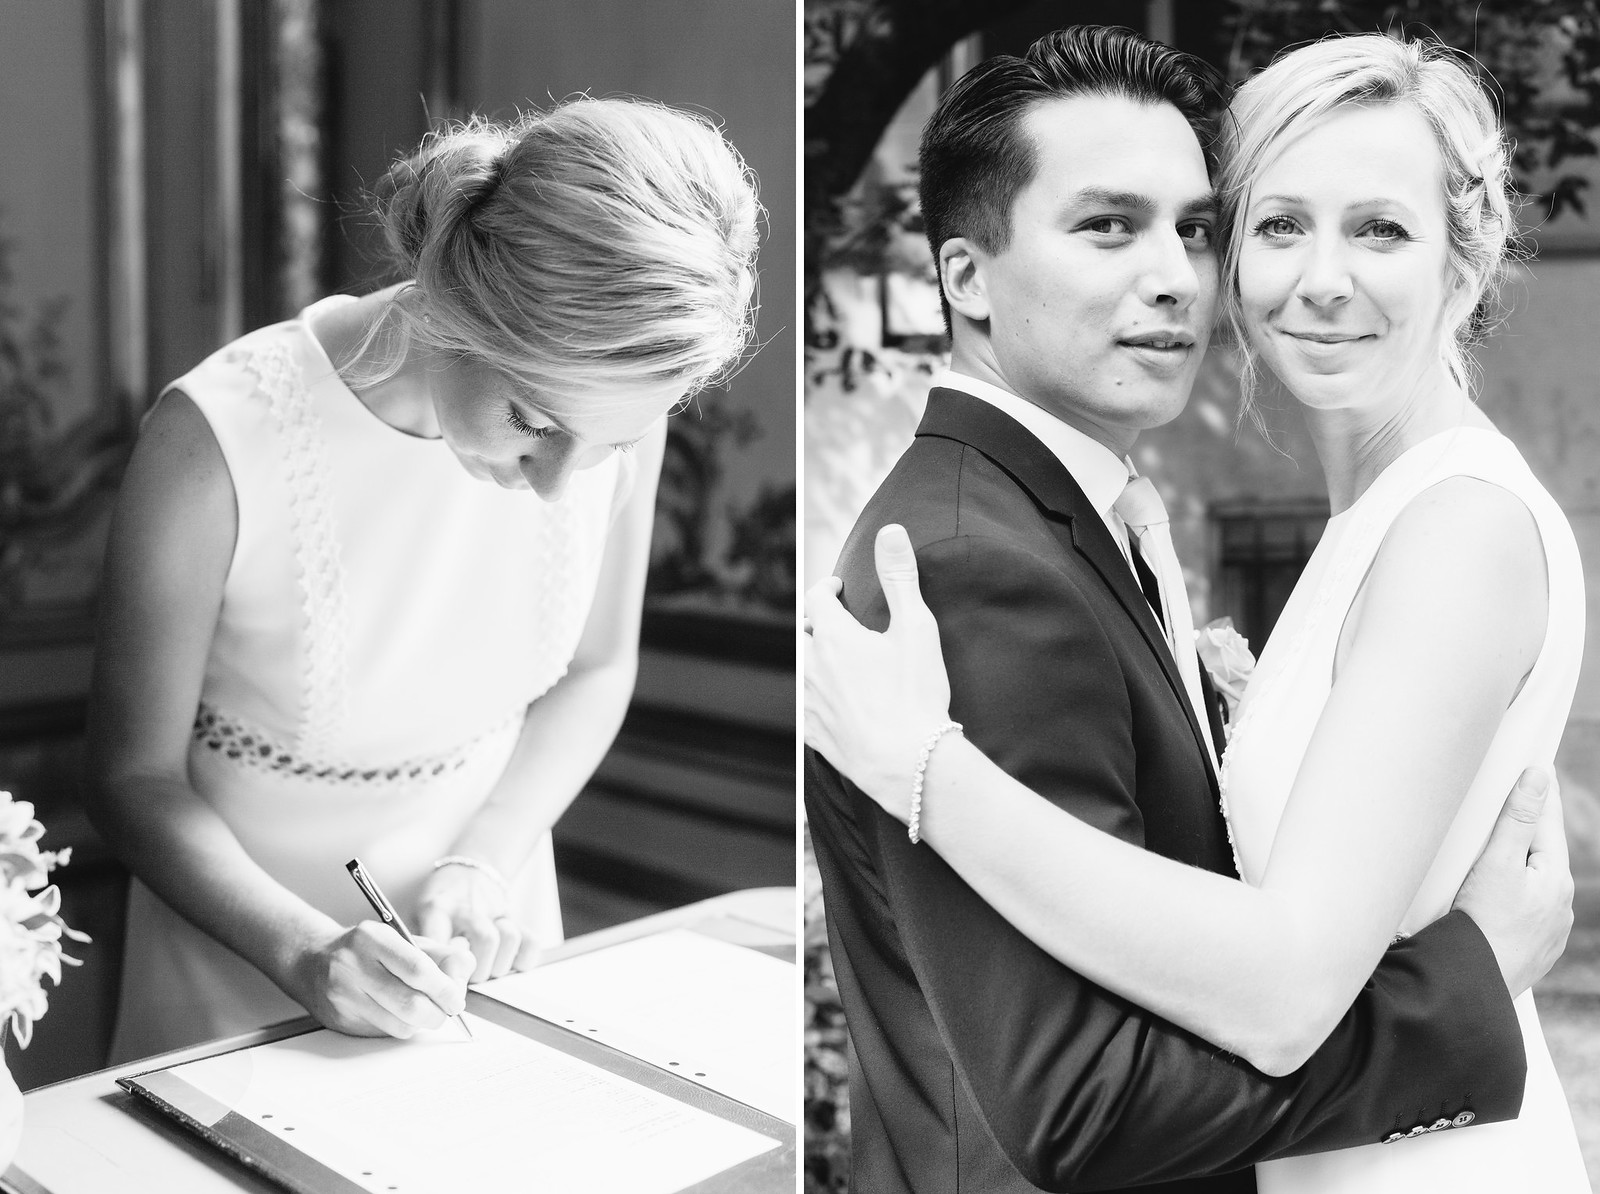 Our Civil ceremony by Carin Olsson